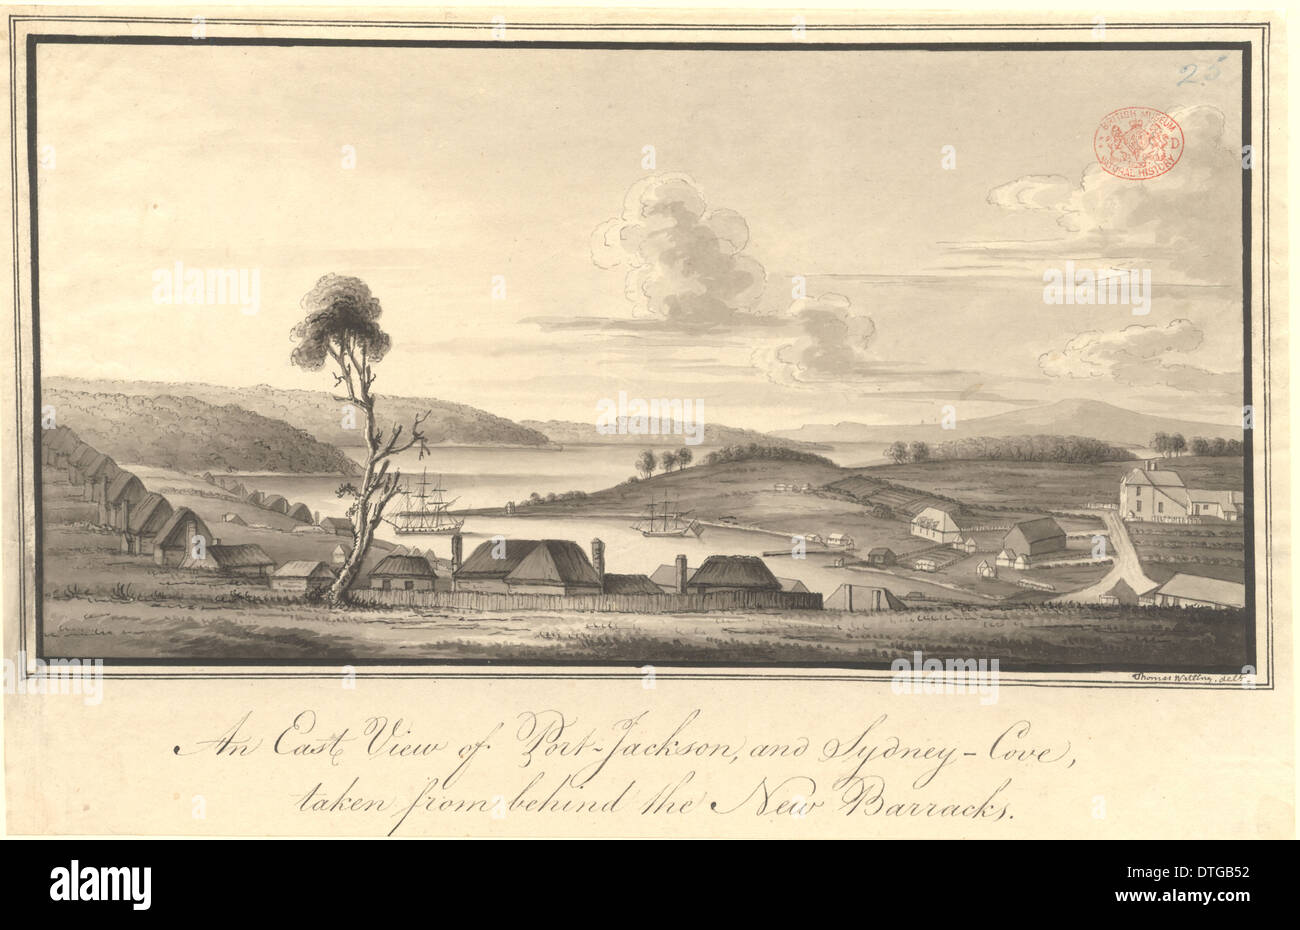 An East view of Port Jackson - Stock Image